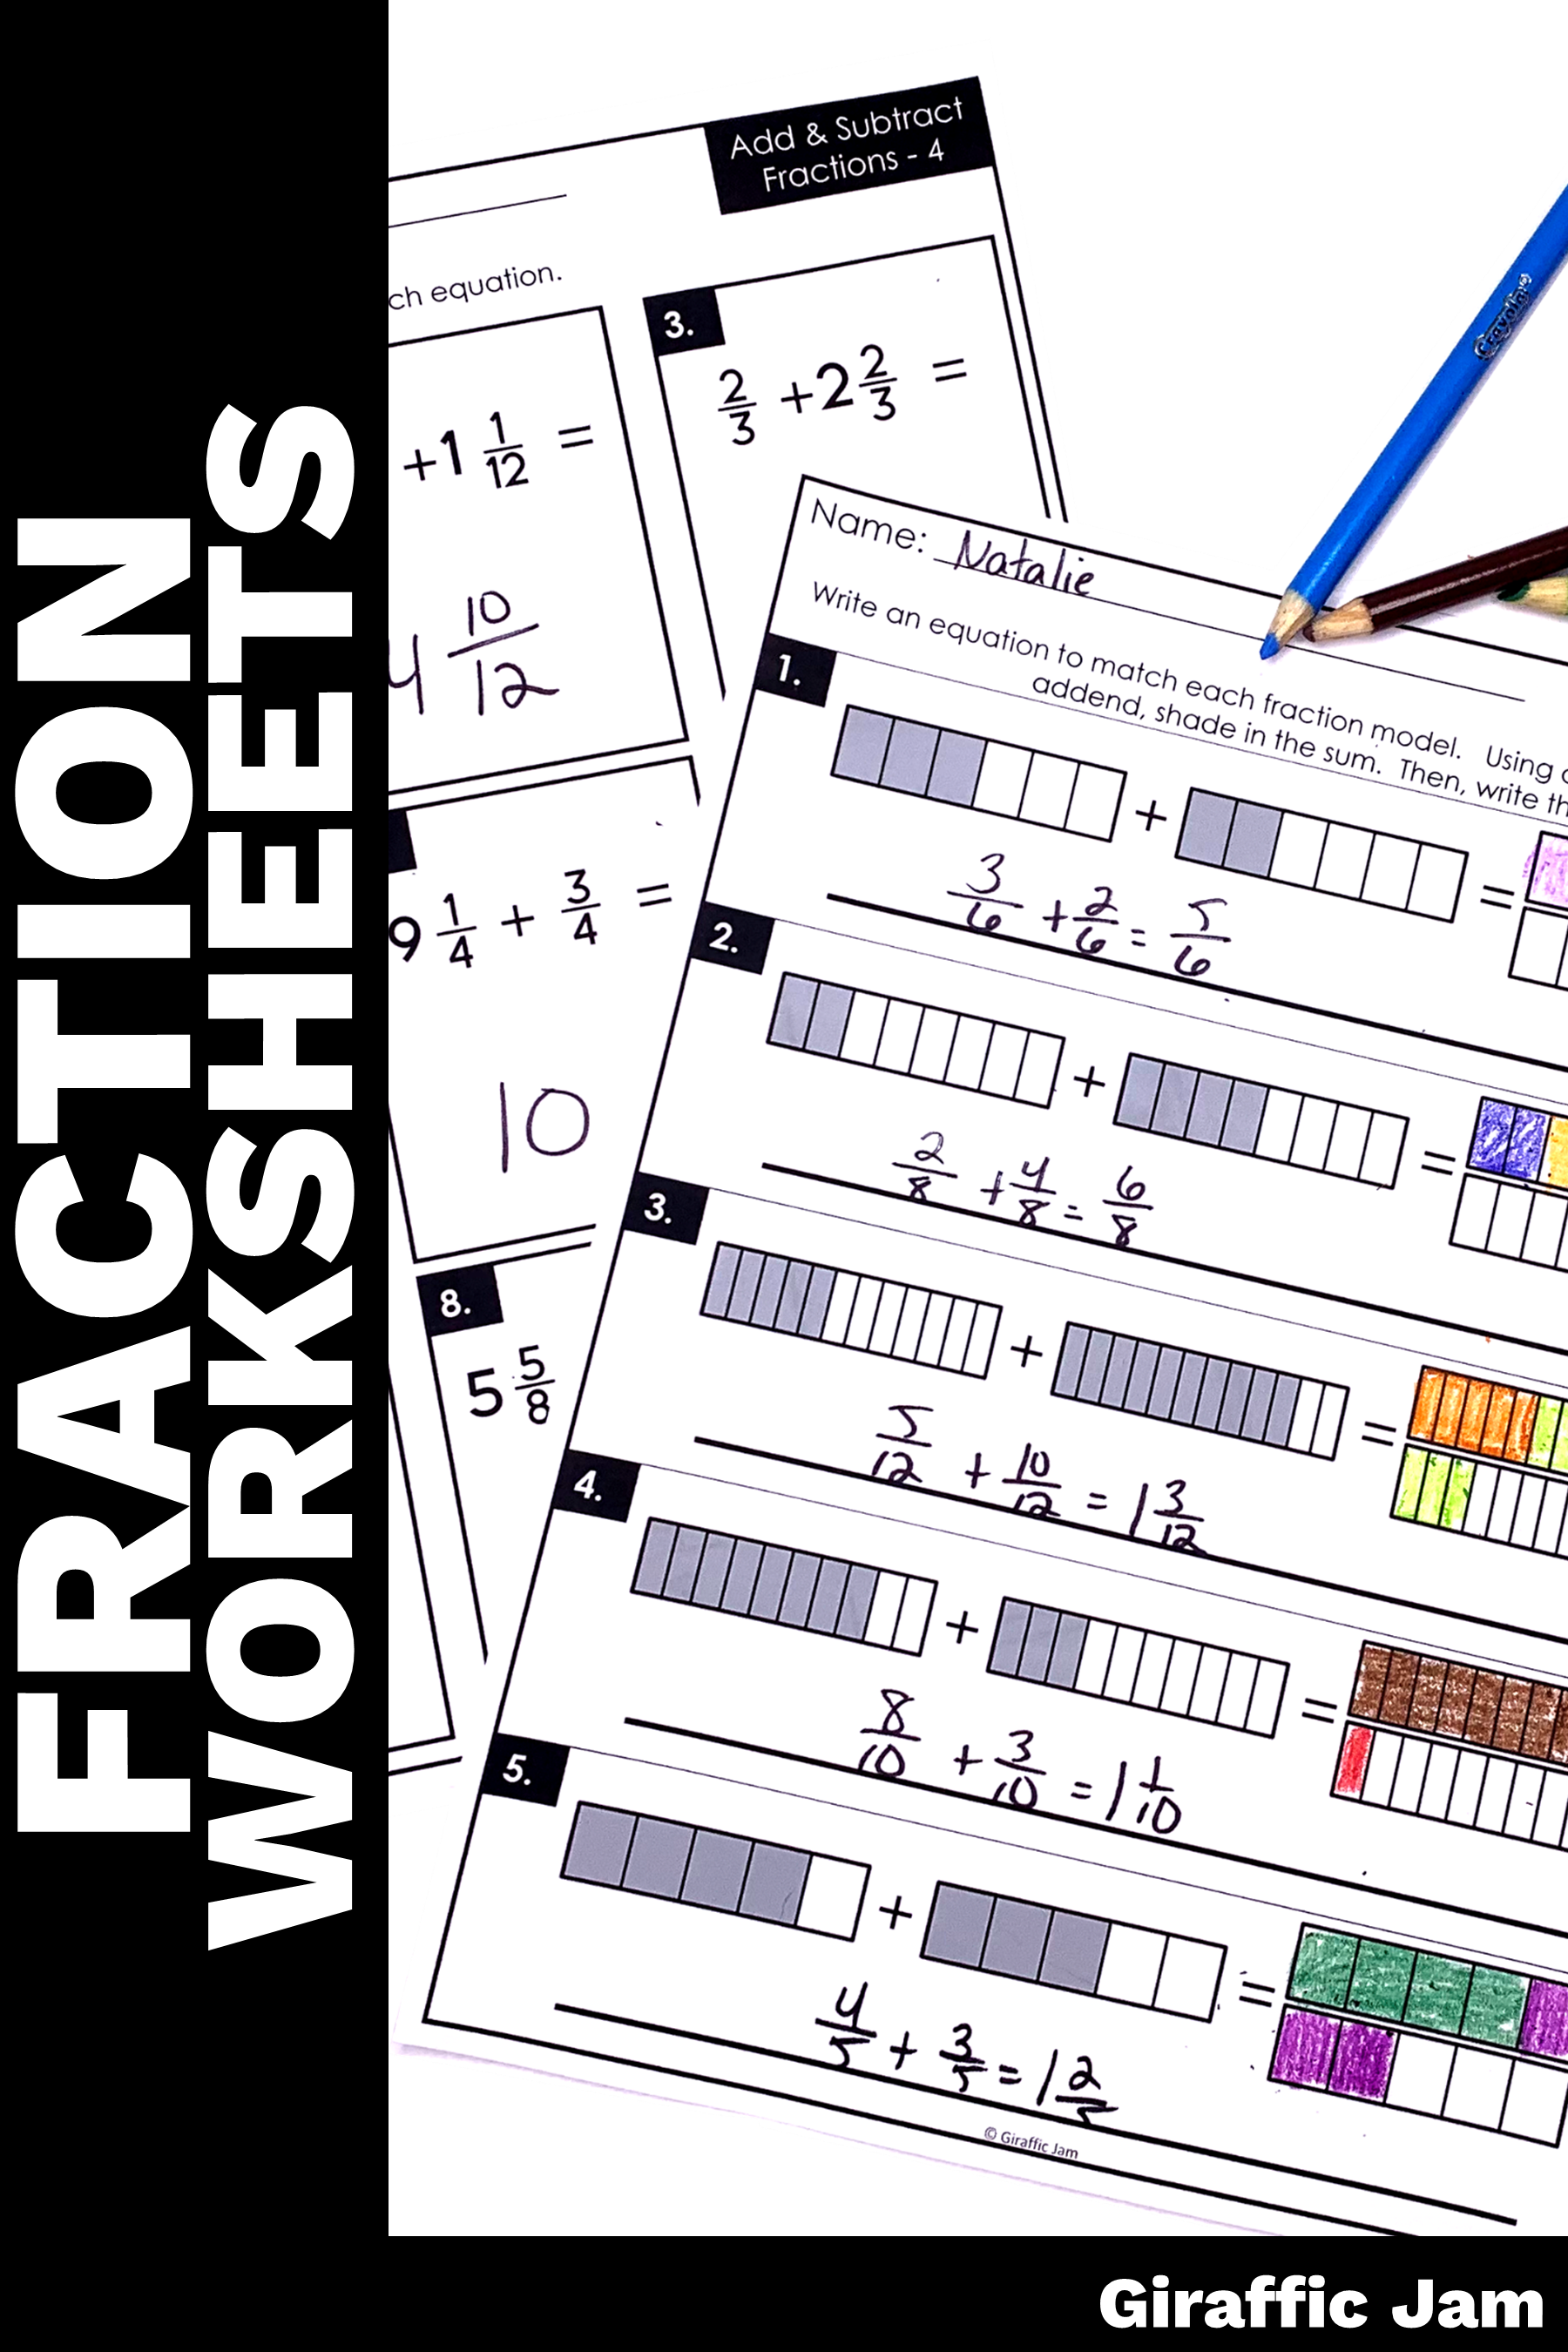 hight resolution of Adding and Subtracting Fractions Worksheets   Fraction Homework   Fractions  worksheets